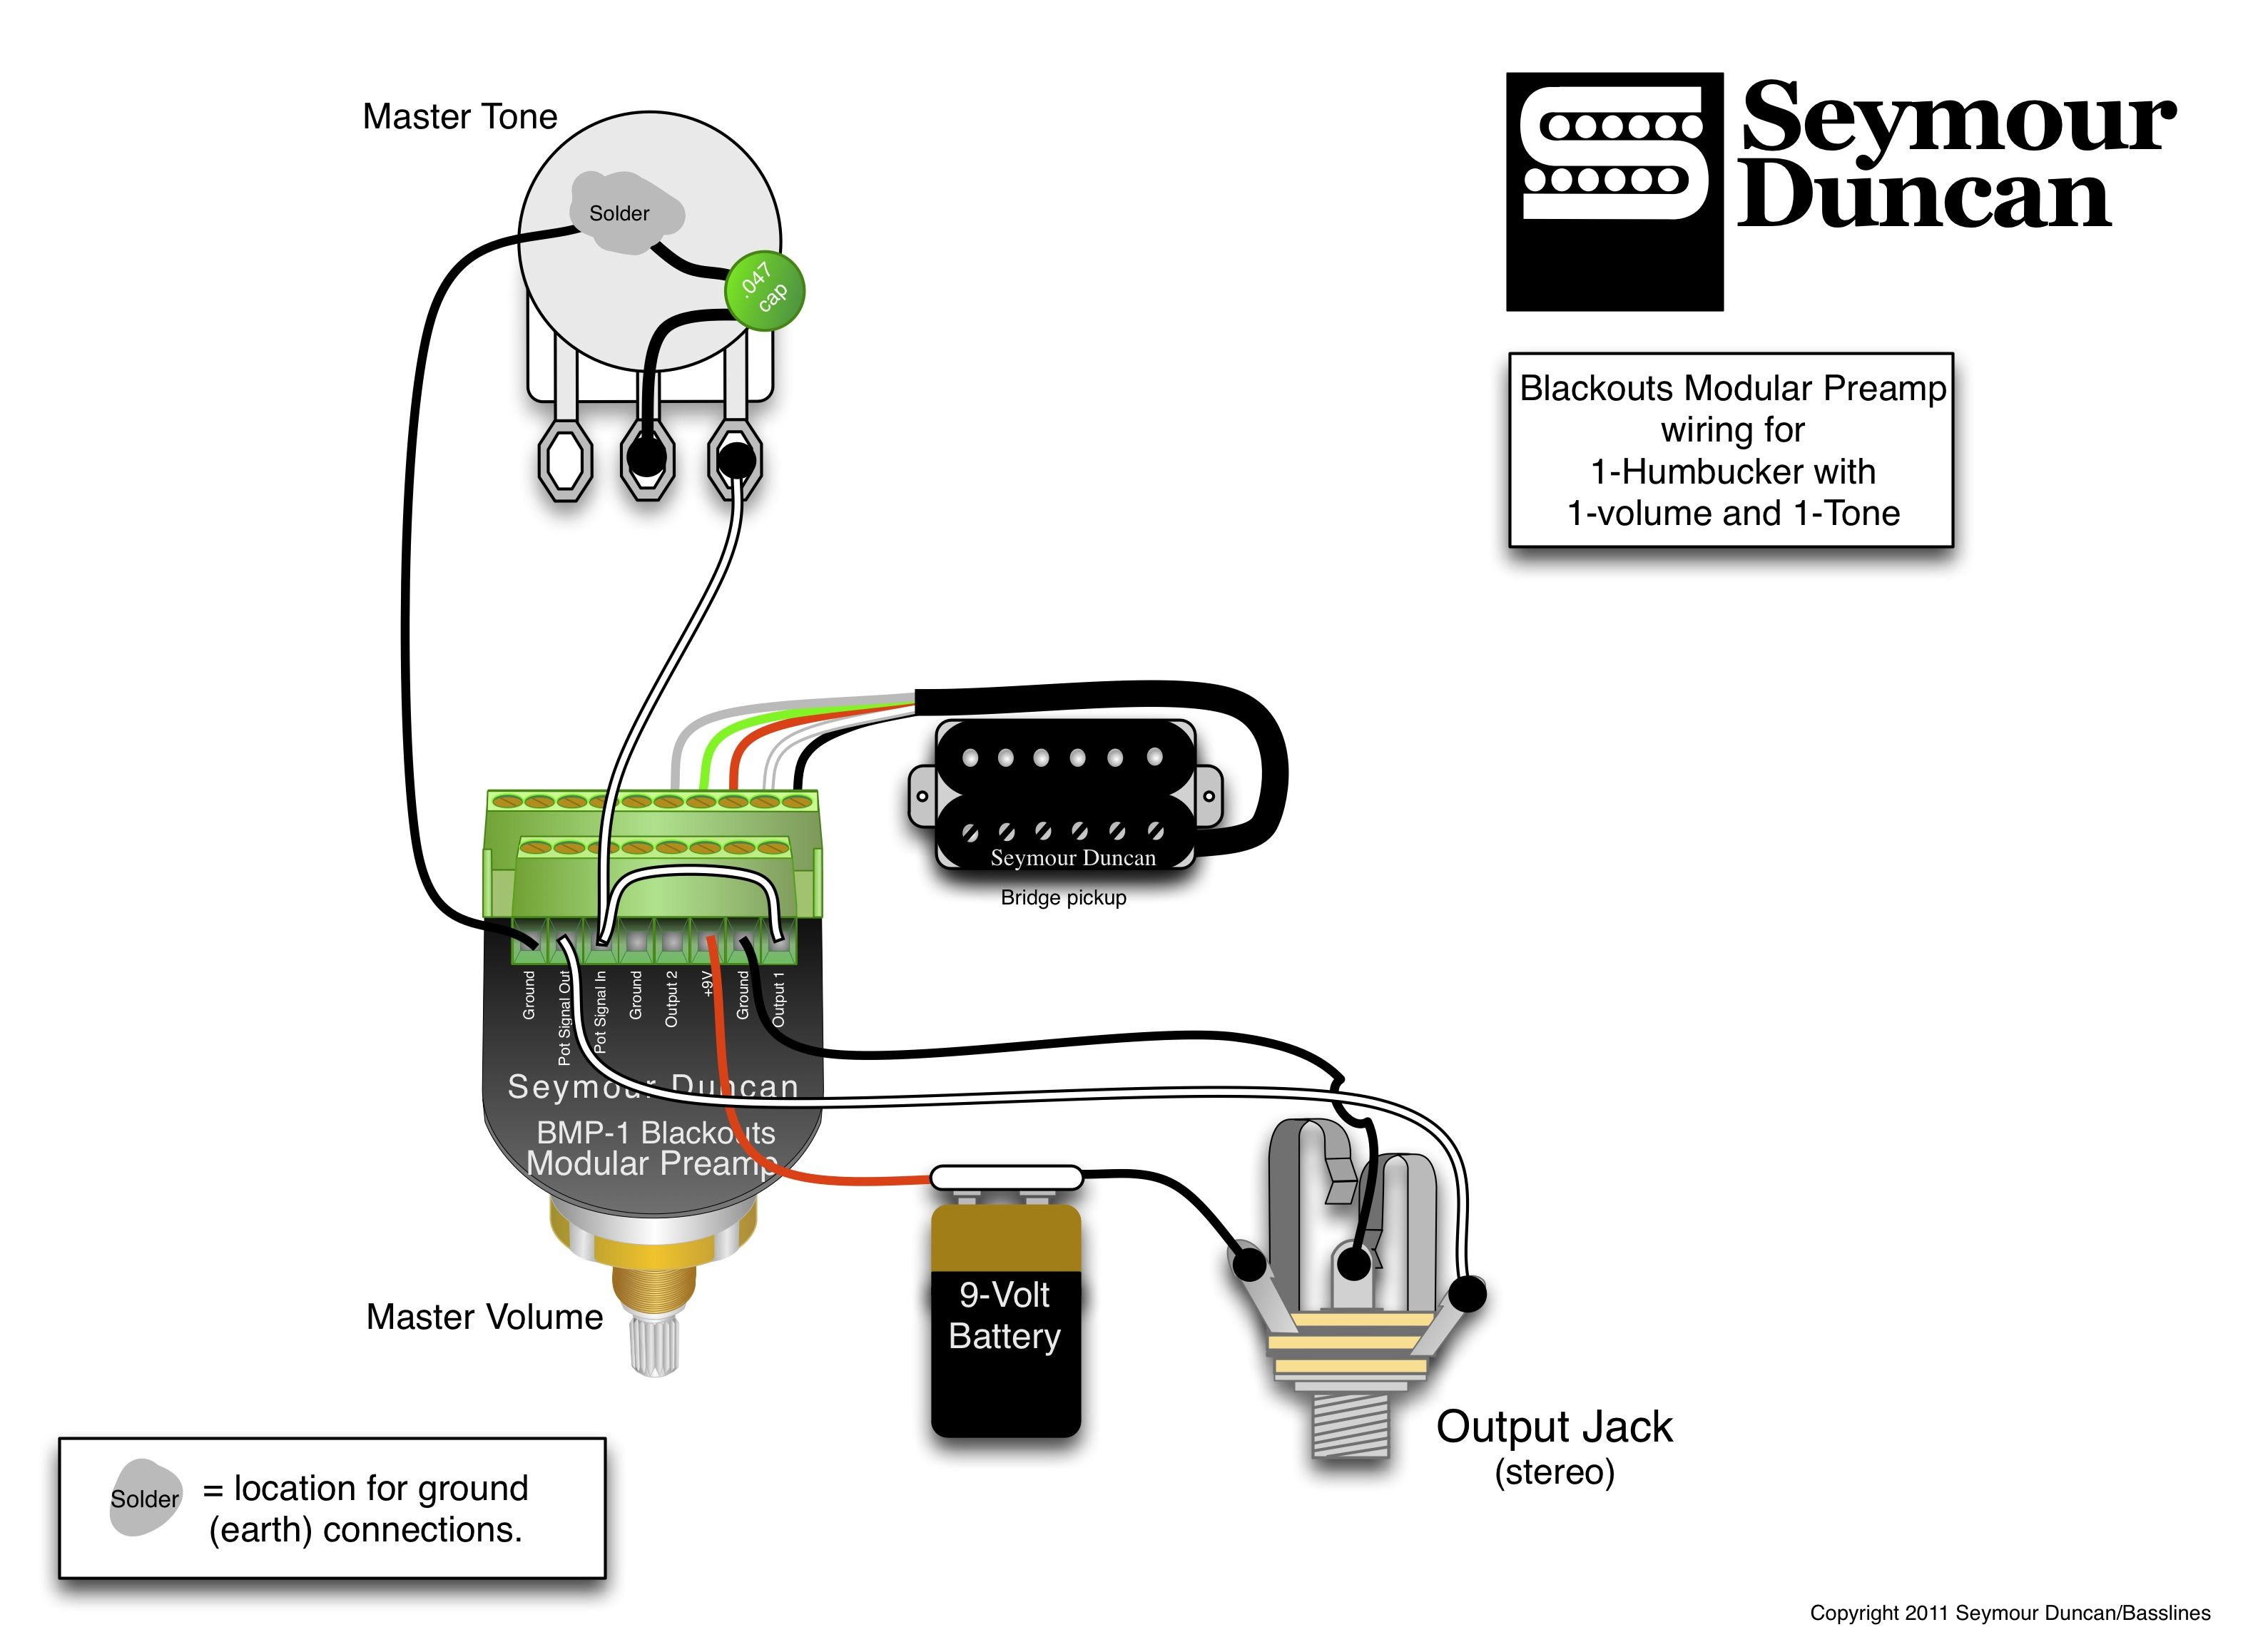 wiring diagram seymour duncan vtec obd1 blackouts modular preamp for 1 humbucker with